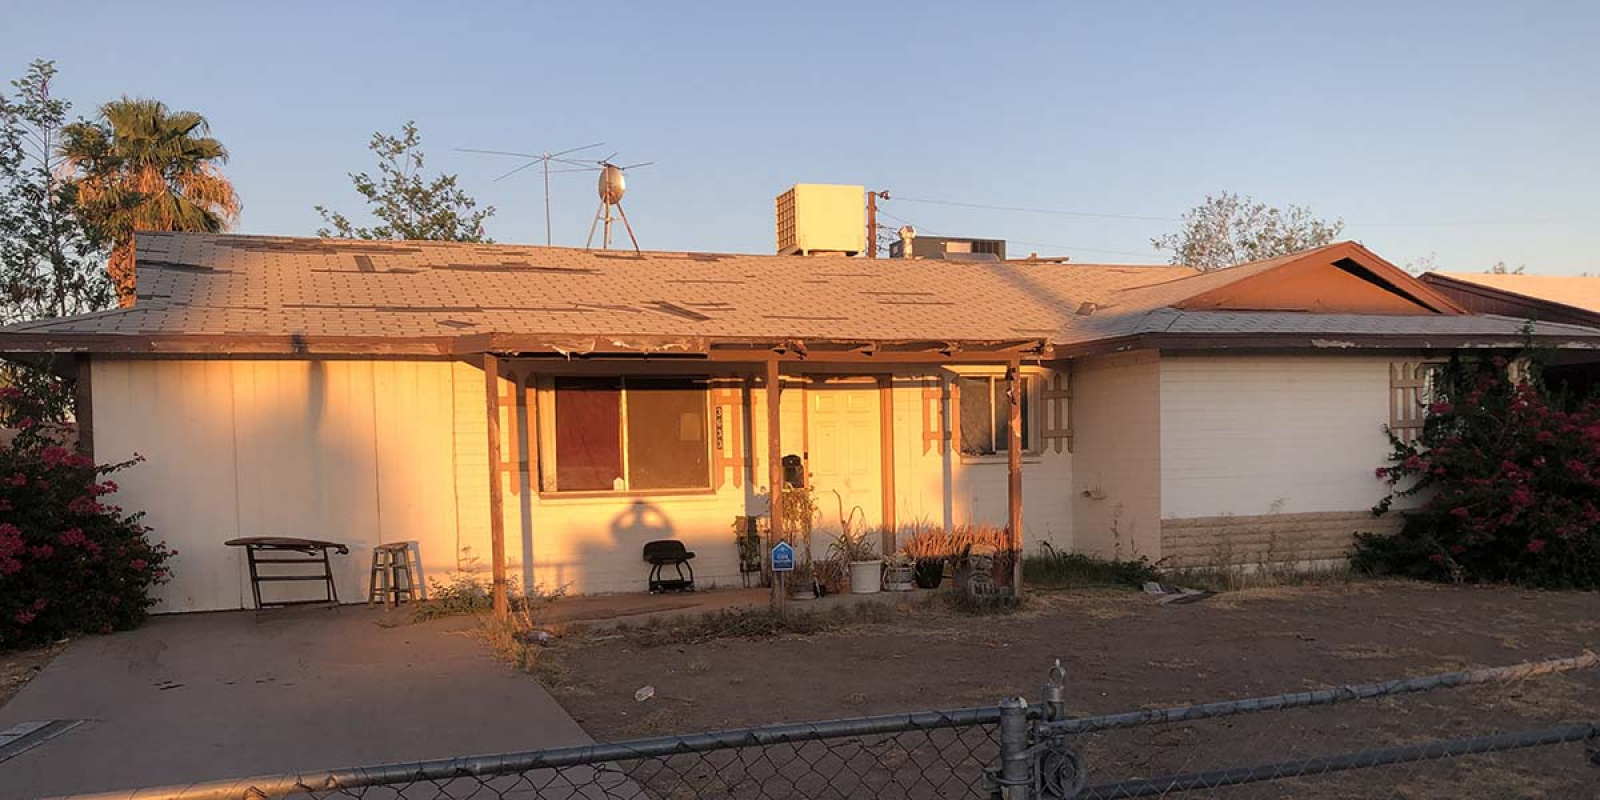 3633 N 79th Ave, Phoenix, Arizona 85033, 5 Bedrooms Bedrooms, ,2 BathroomsBathrooms,SFR,Available,N 79th Ave,1206